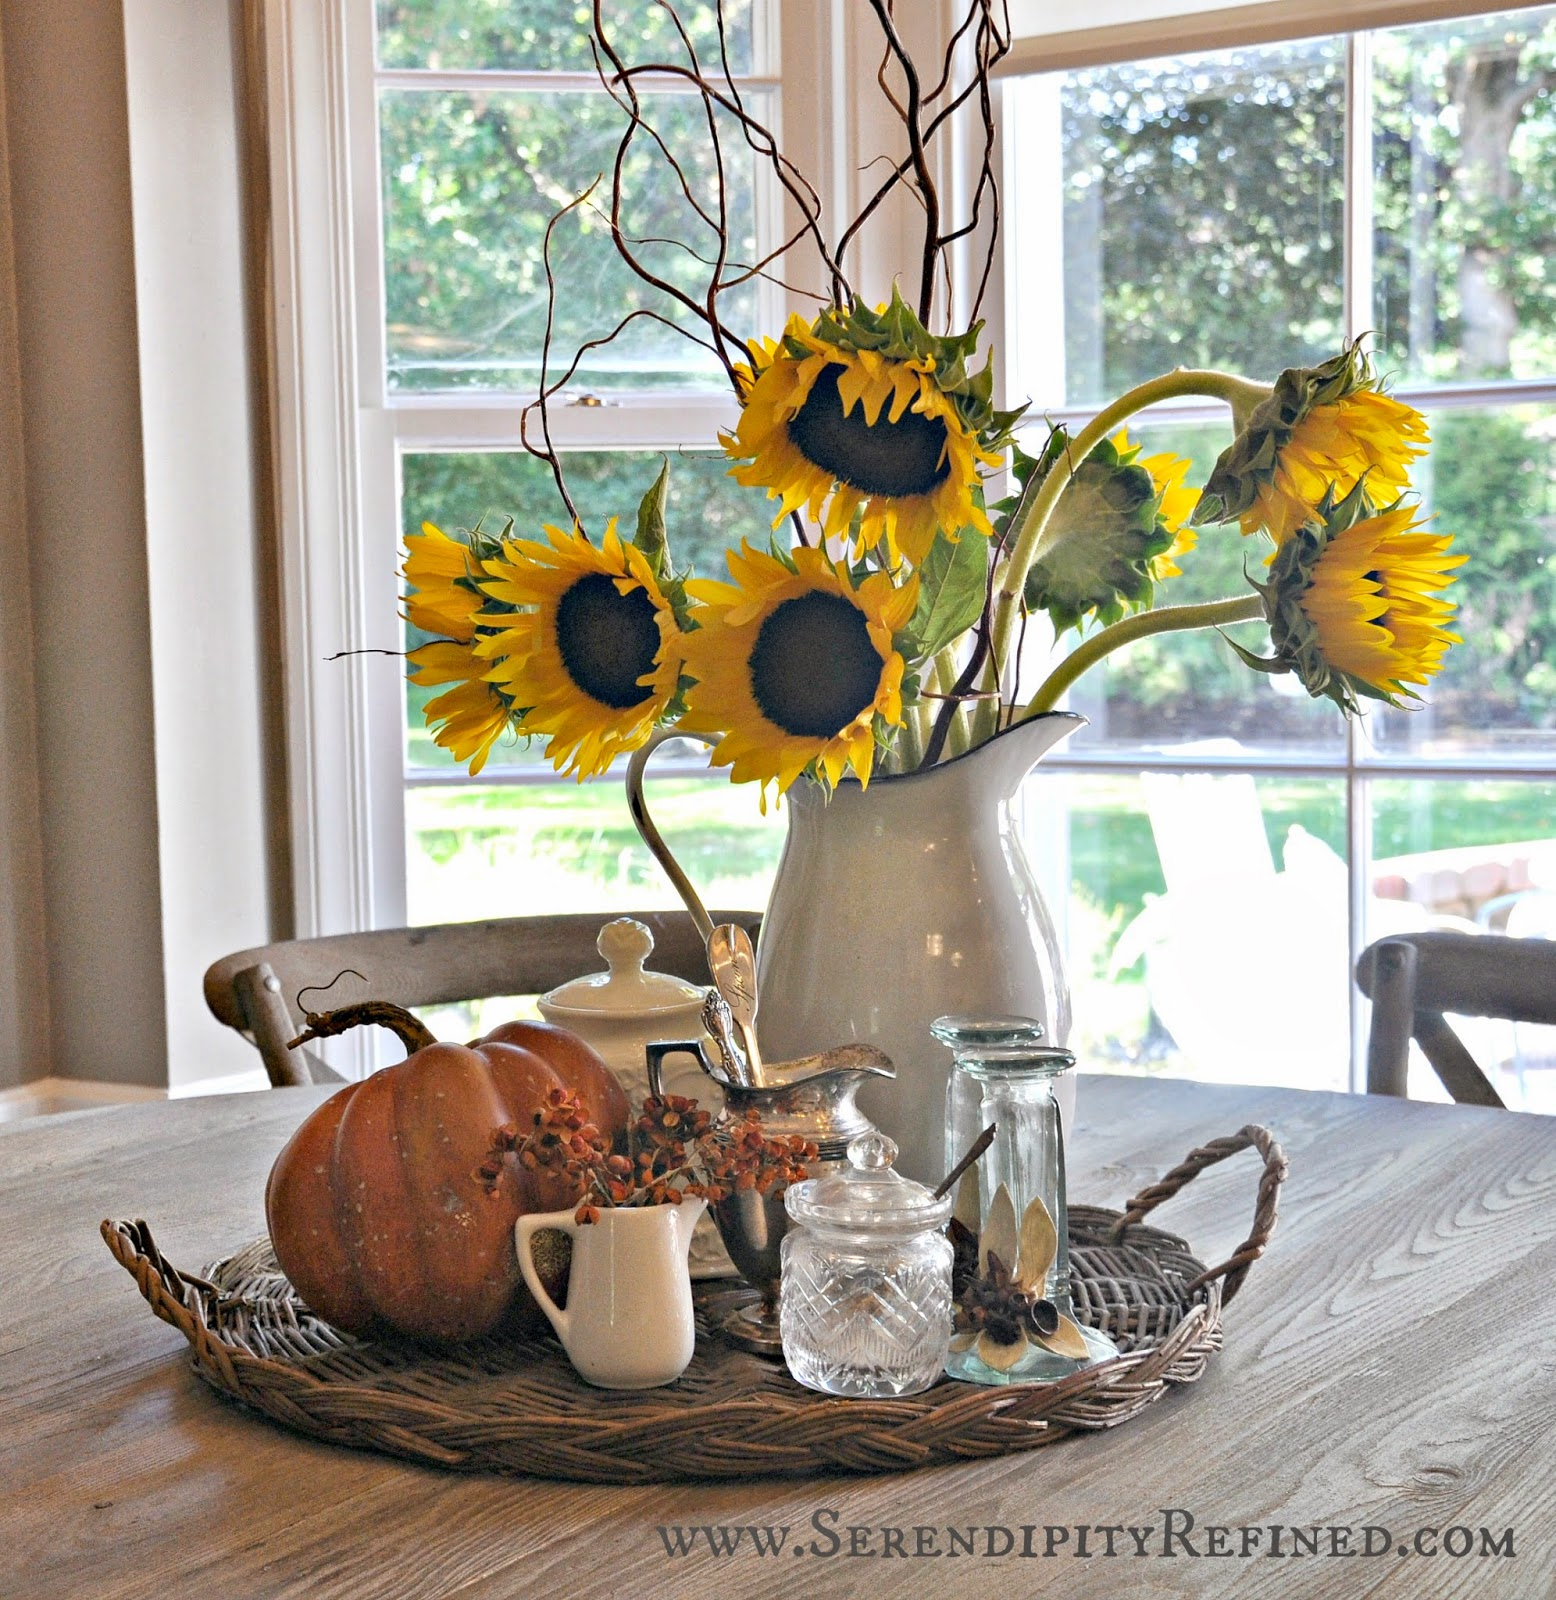 Serendipity Refined: Inside The French Farmhouse: Fall Decorating